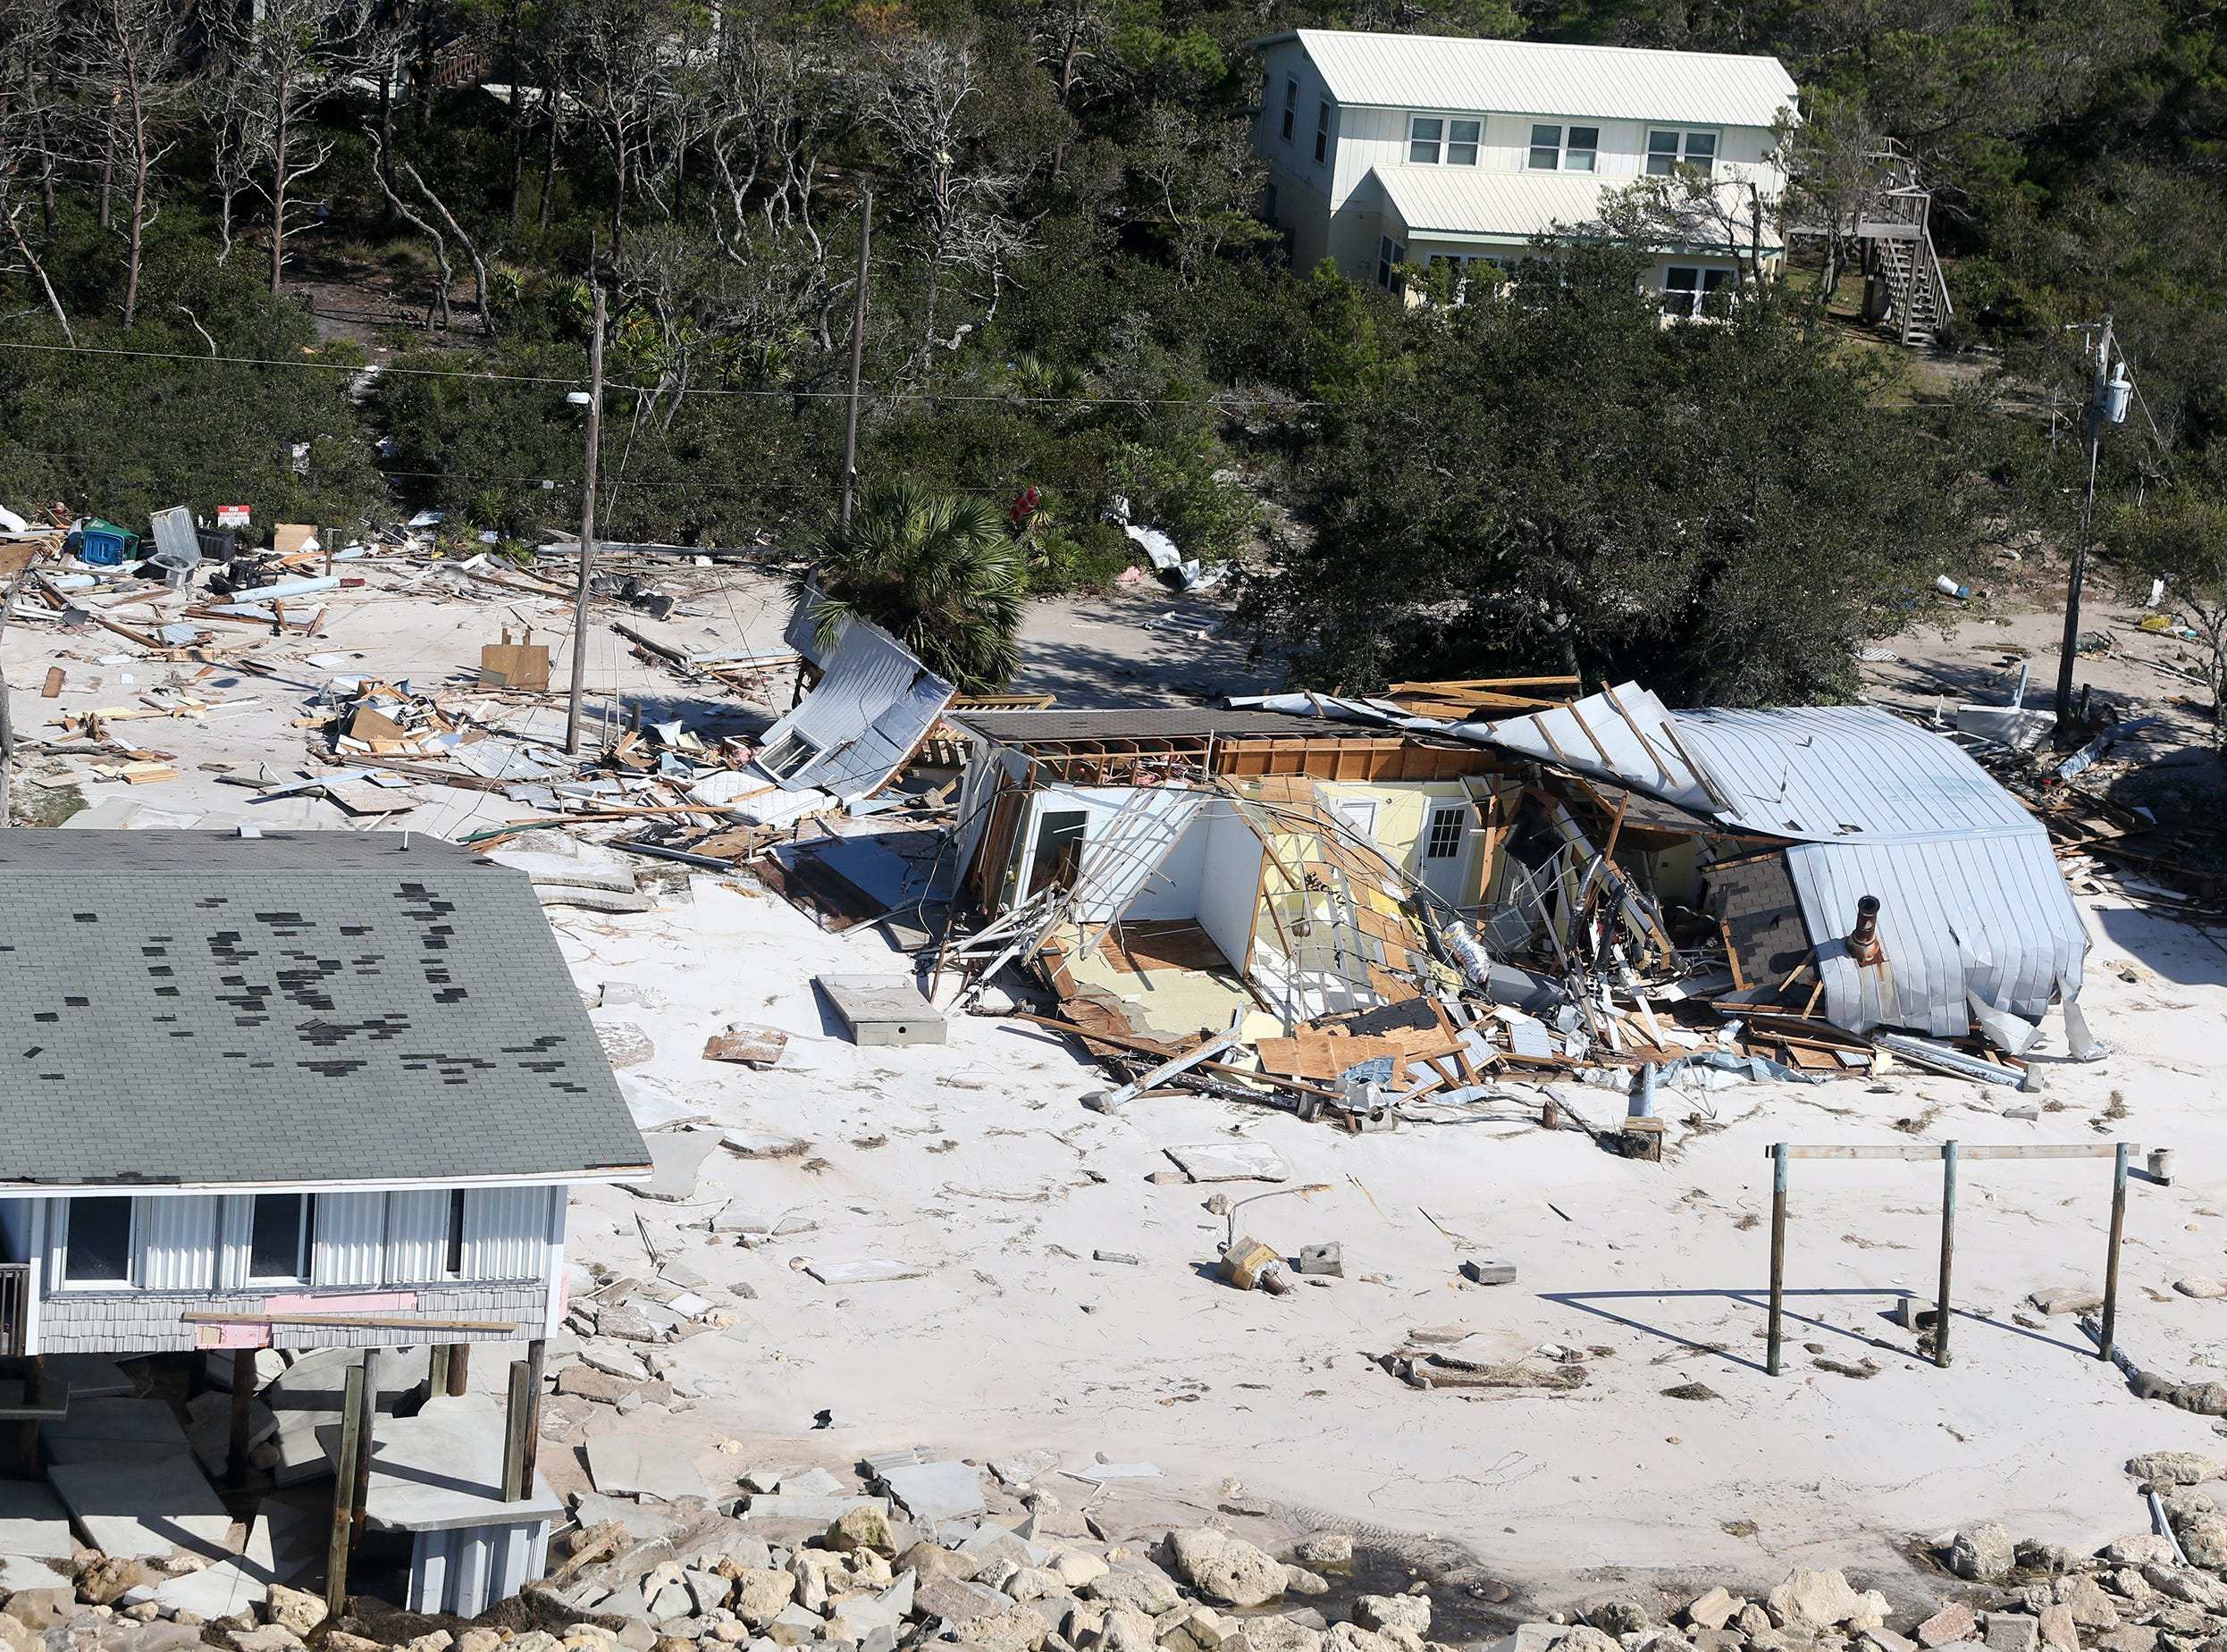 Hurricane Michael damaged several homes on Alligator Point in Franklin County, Florida. (Picture date: 10/11/18).